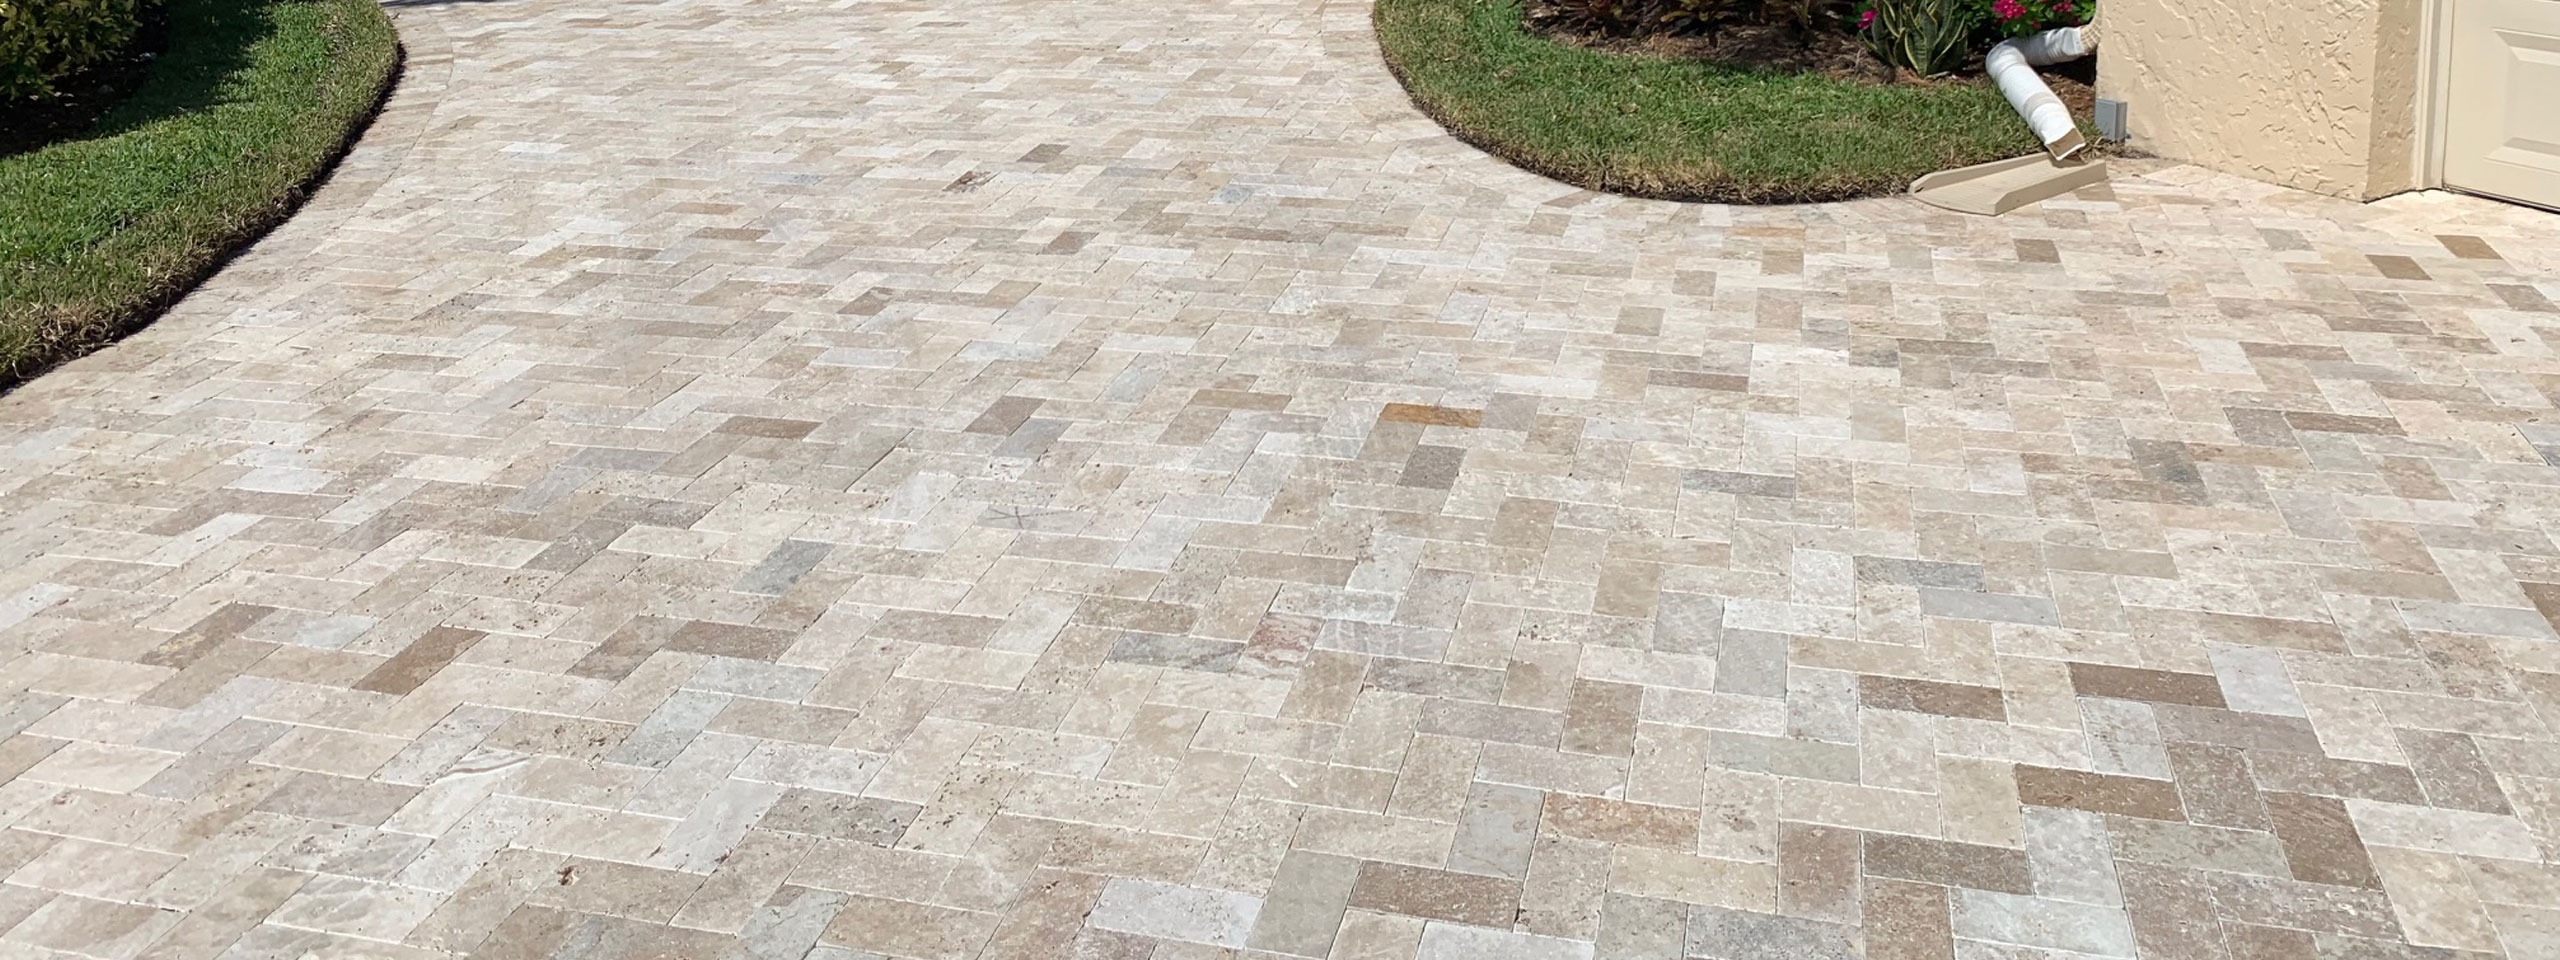 Slider Pavers 05